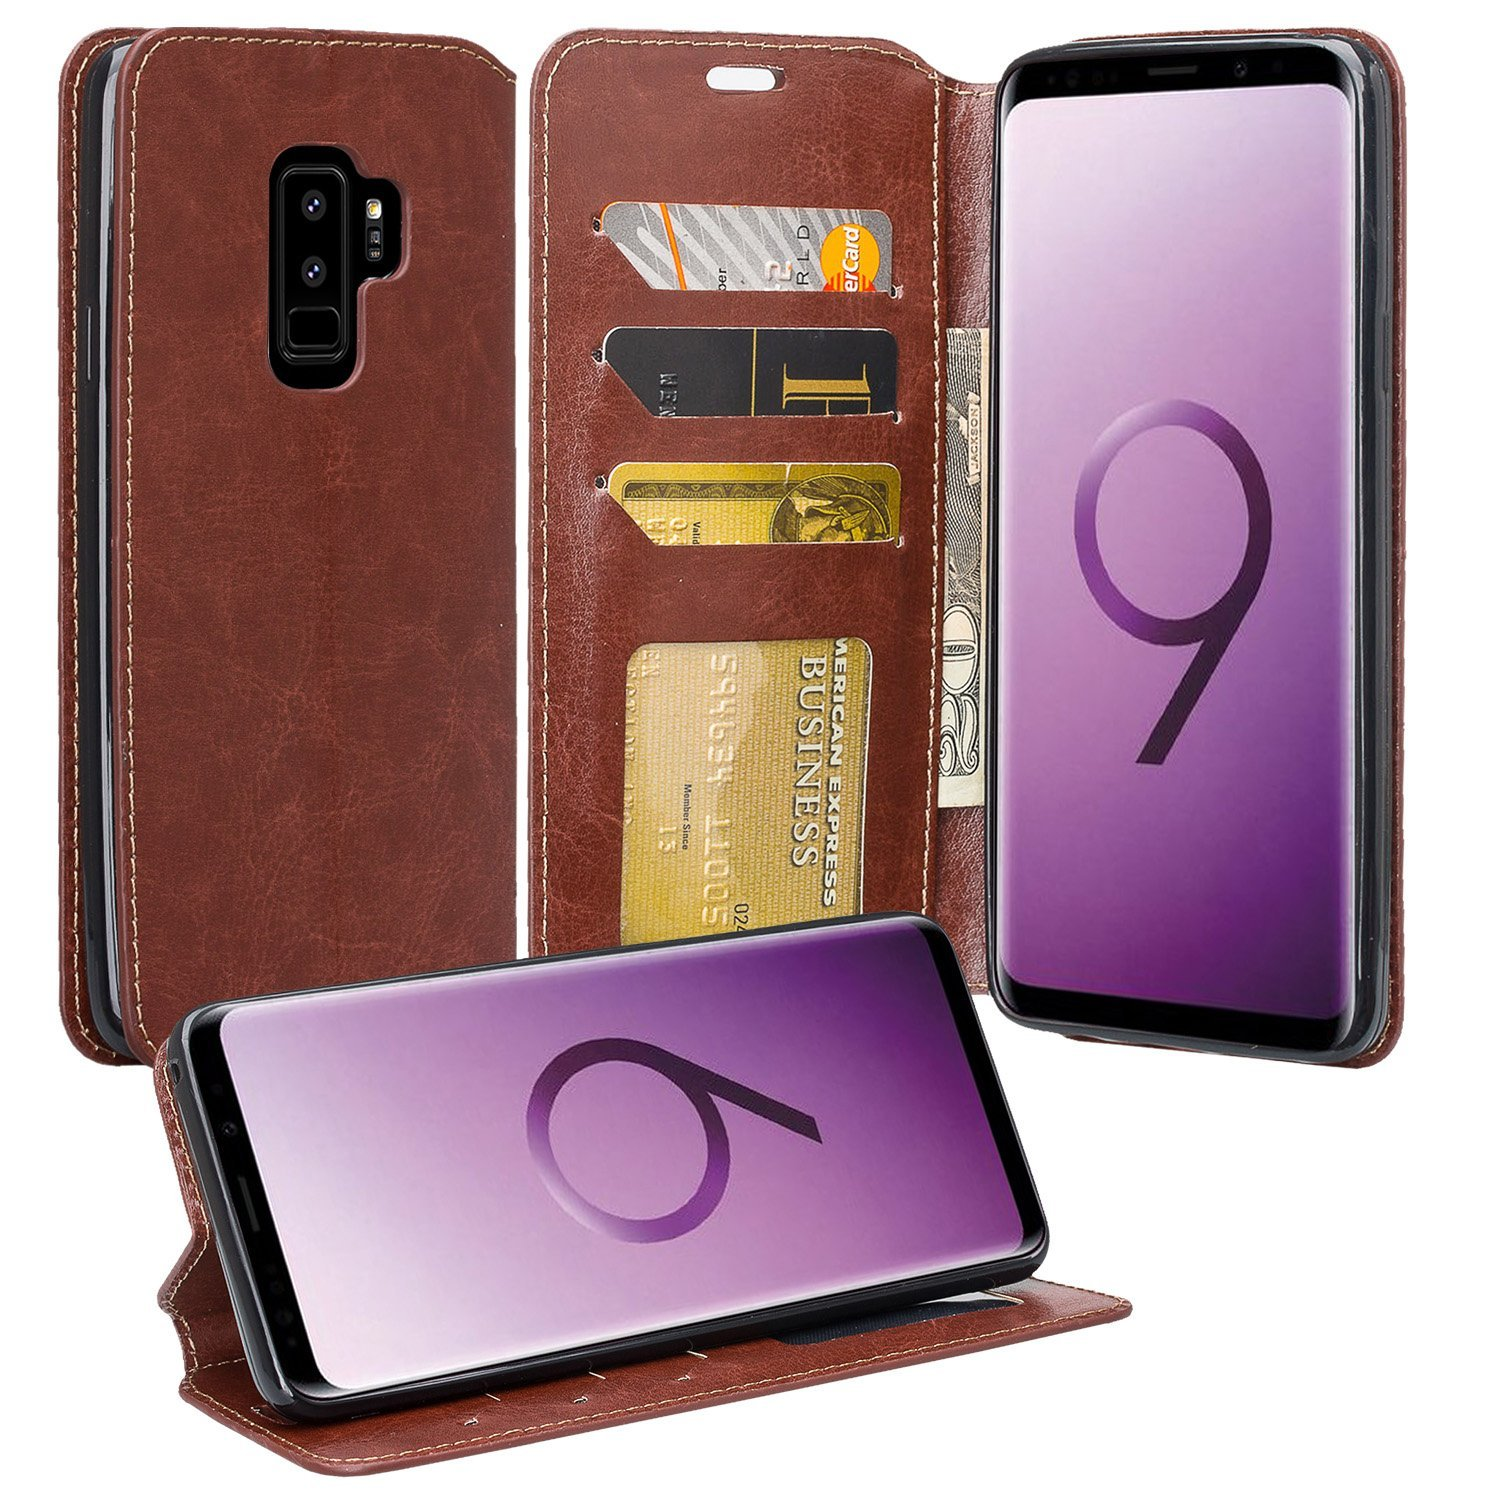 Samsung Galaxy S9 Cases, Slim Flip [Kickstand] Pu Leather Magnetic Fold Wallet Case Cover w/ Card Slots - Rainbow Flower